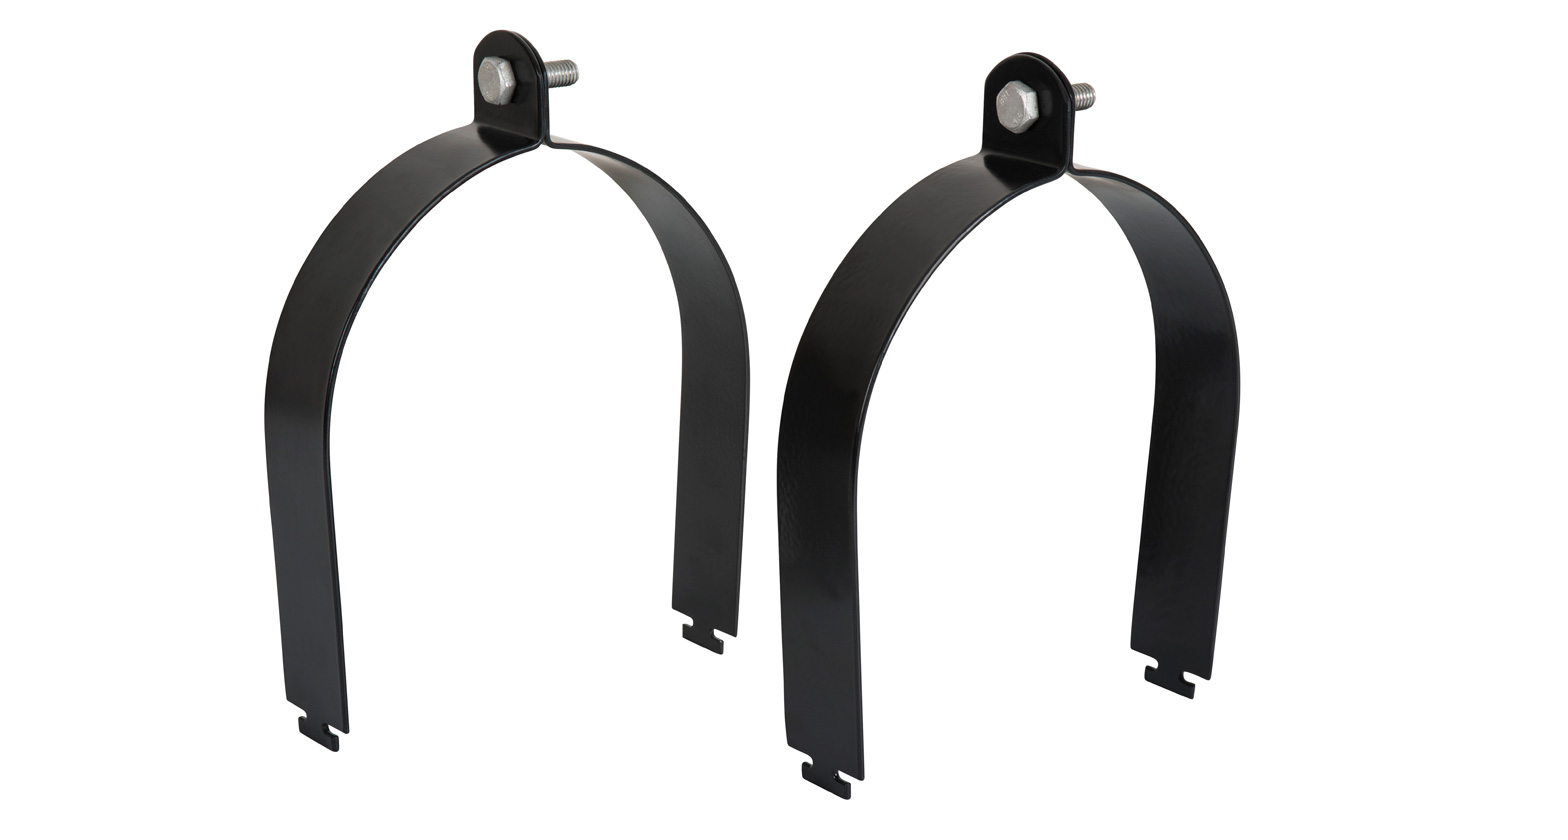 Vortex Pipe Clamps (150mm/6inches)